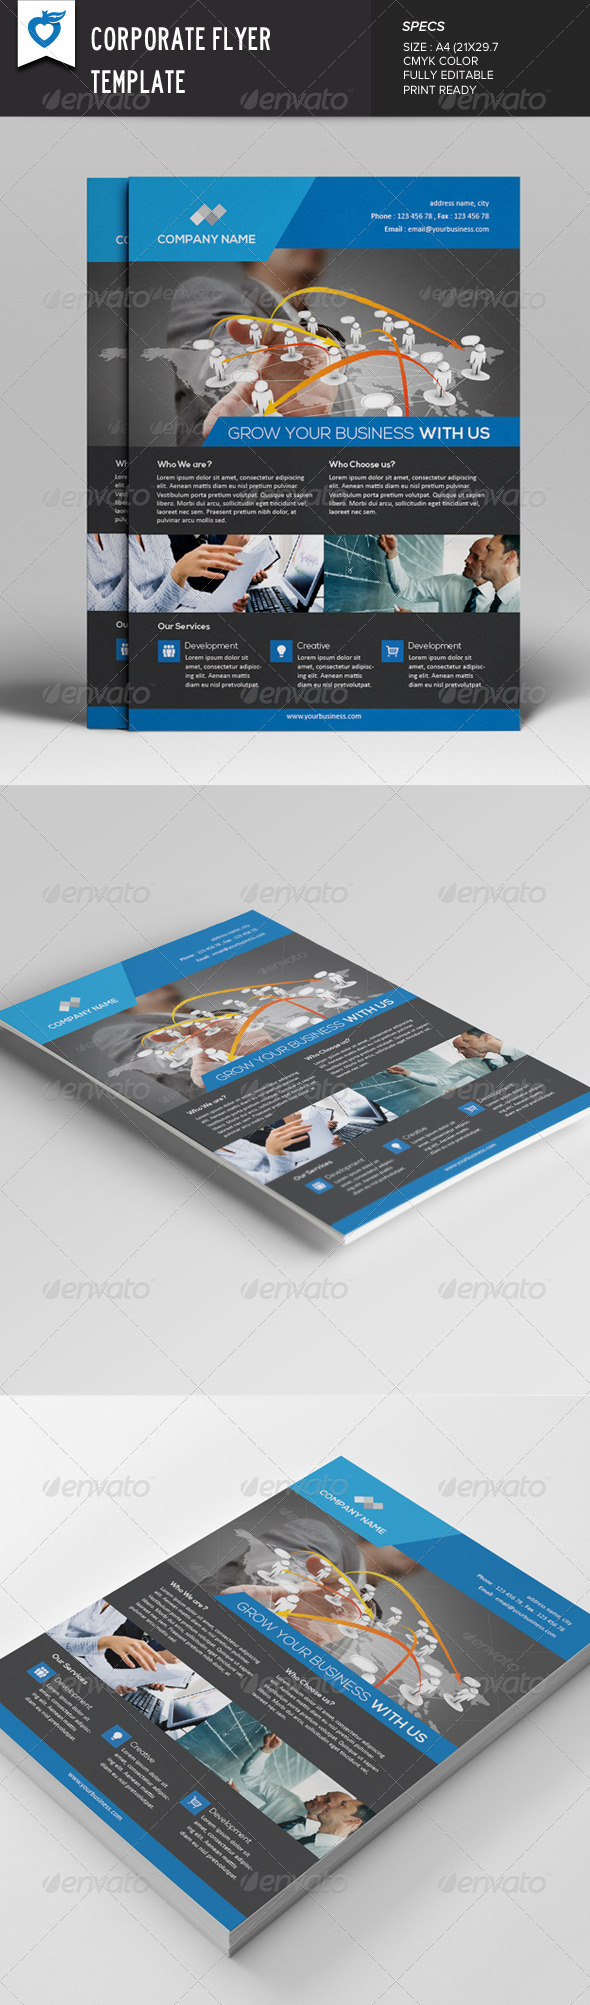 GraphicRiver Corporate Flyer Template v3 7877961